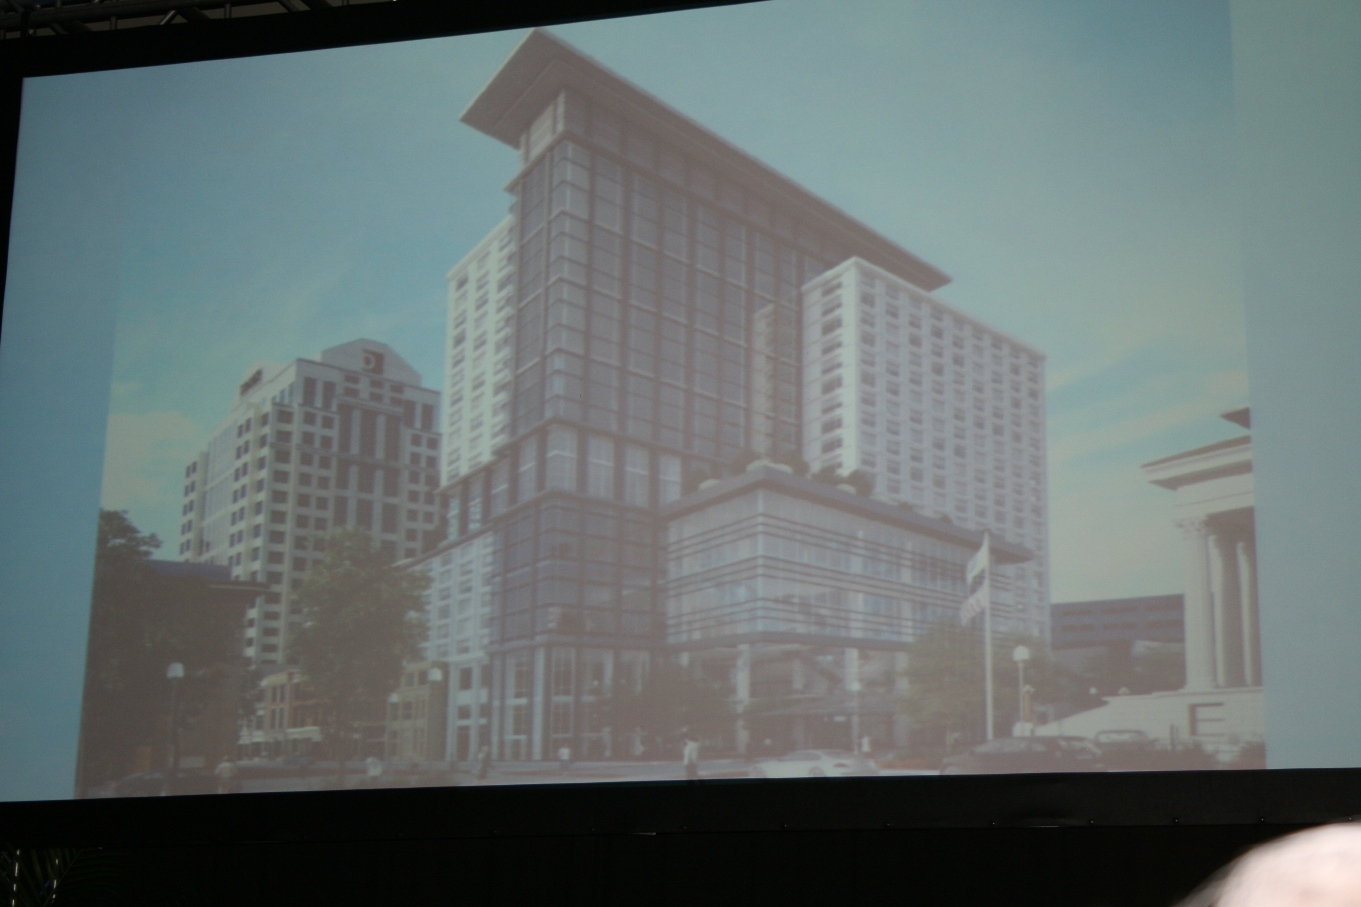 Plans for new 23-story full-service Hotel and Conference Center on Main, Granby and Plume Streets